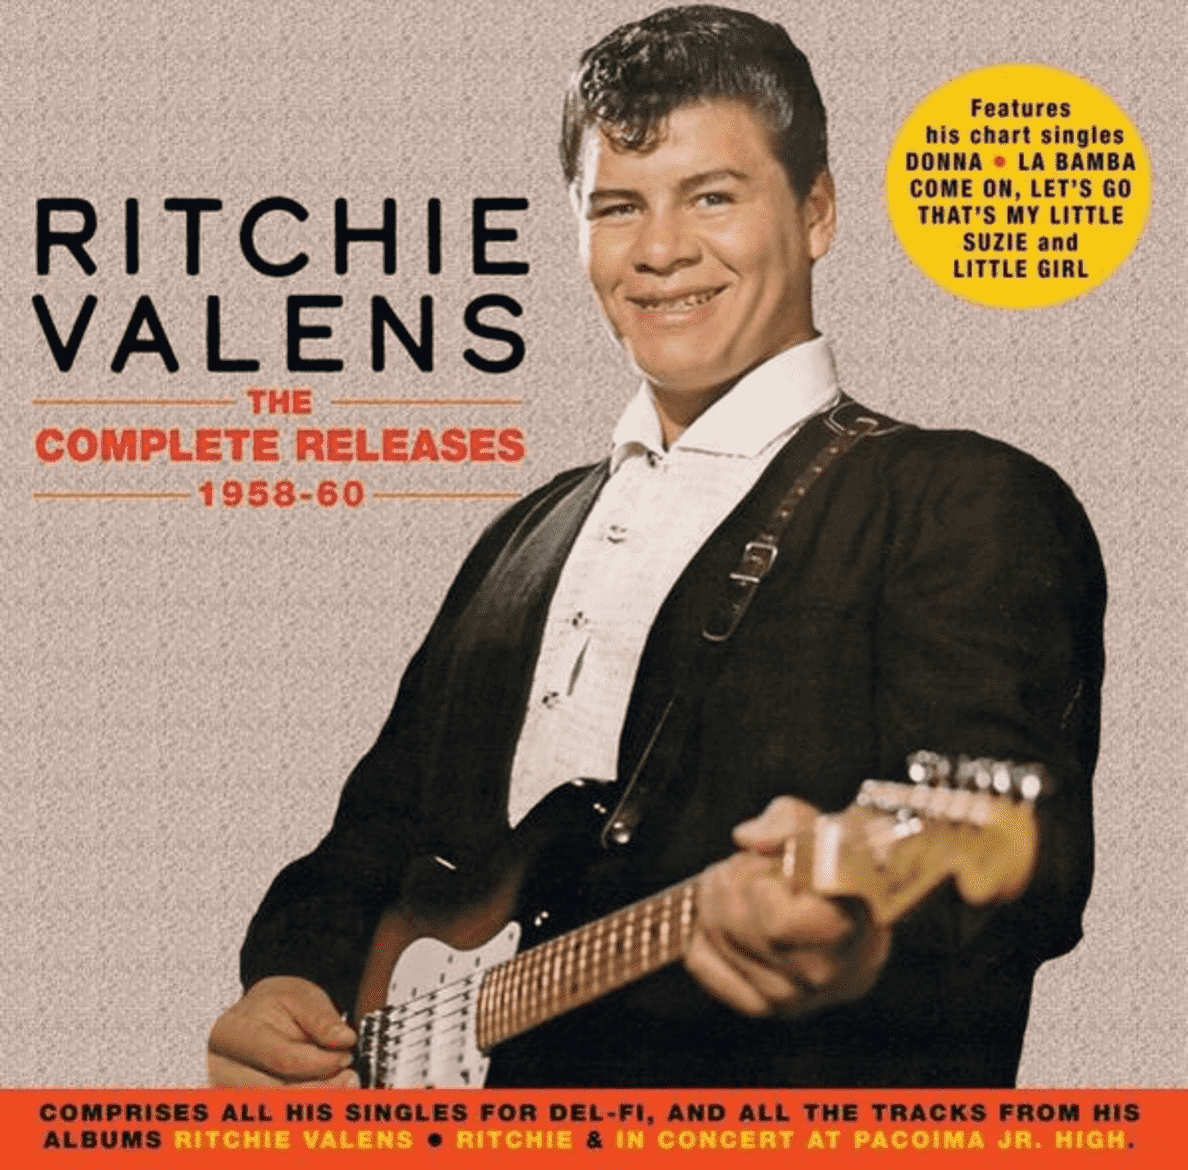 The Complete Releases 1958-60 Ritchie Valens auf CD